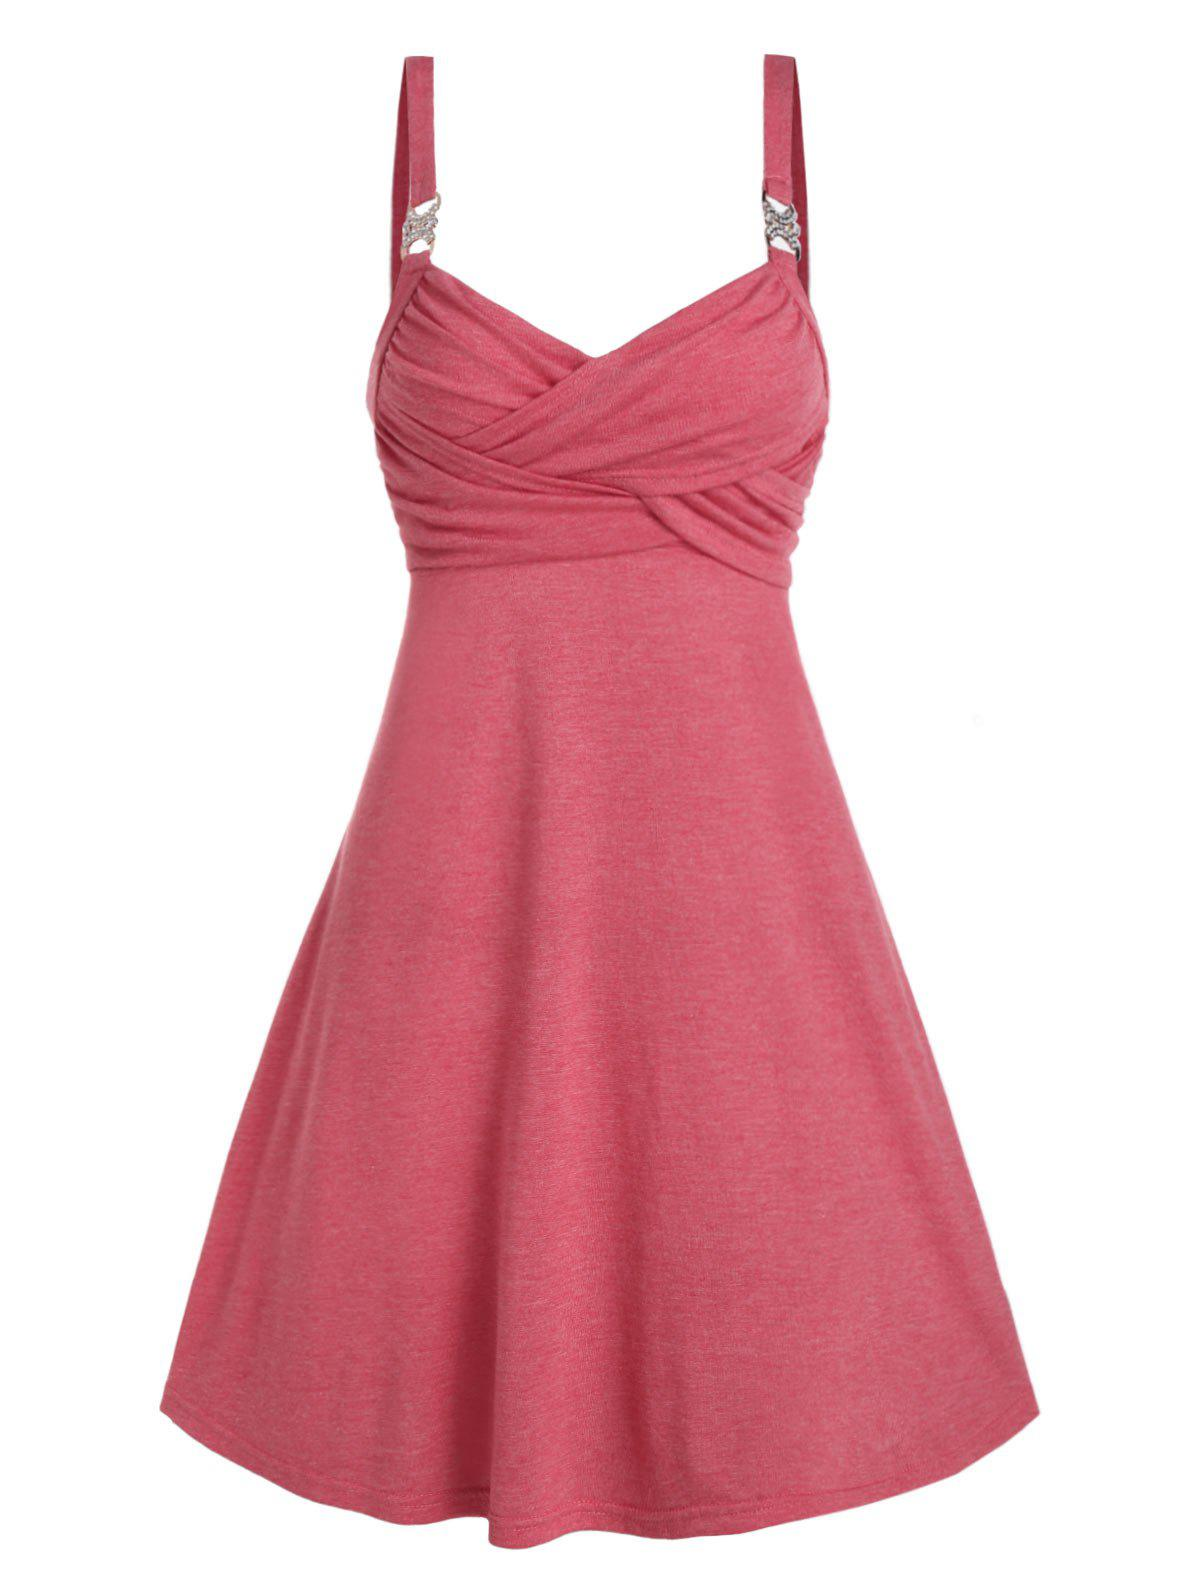 Shops Rhinestone Buckle Sleeveless Heathered Crossover Dress